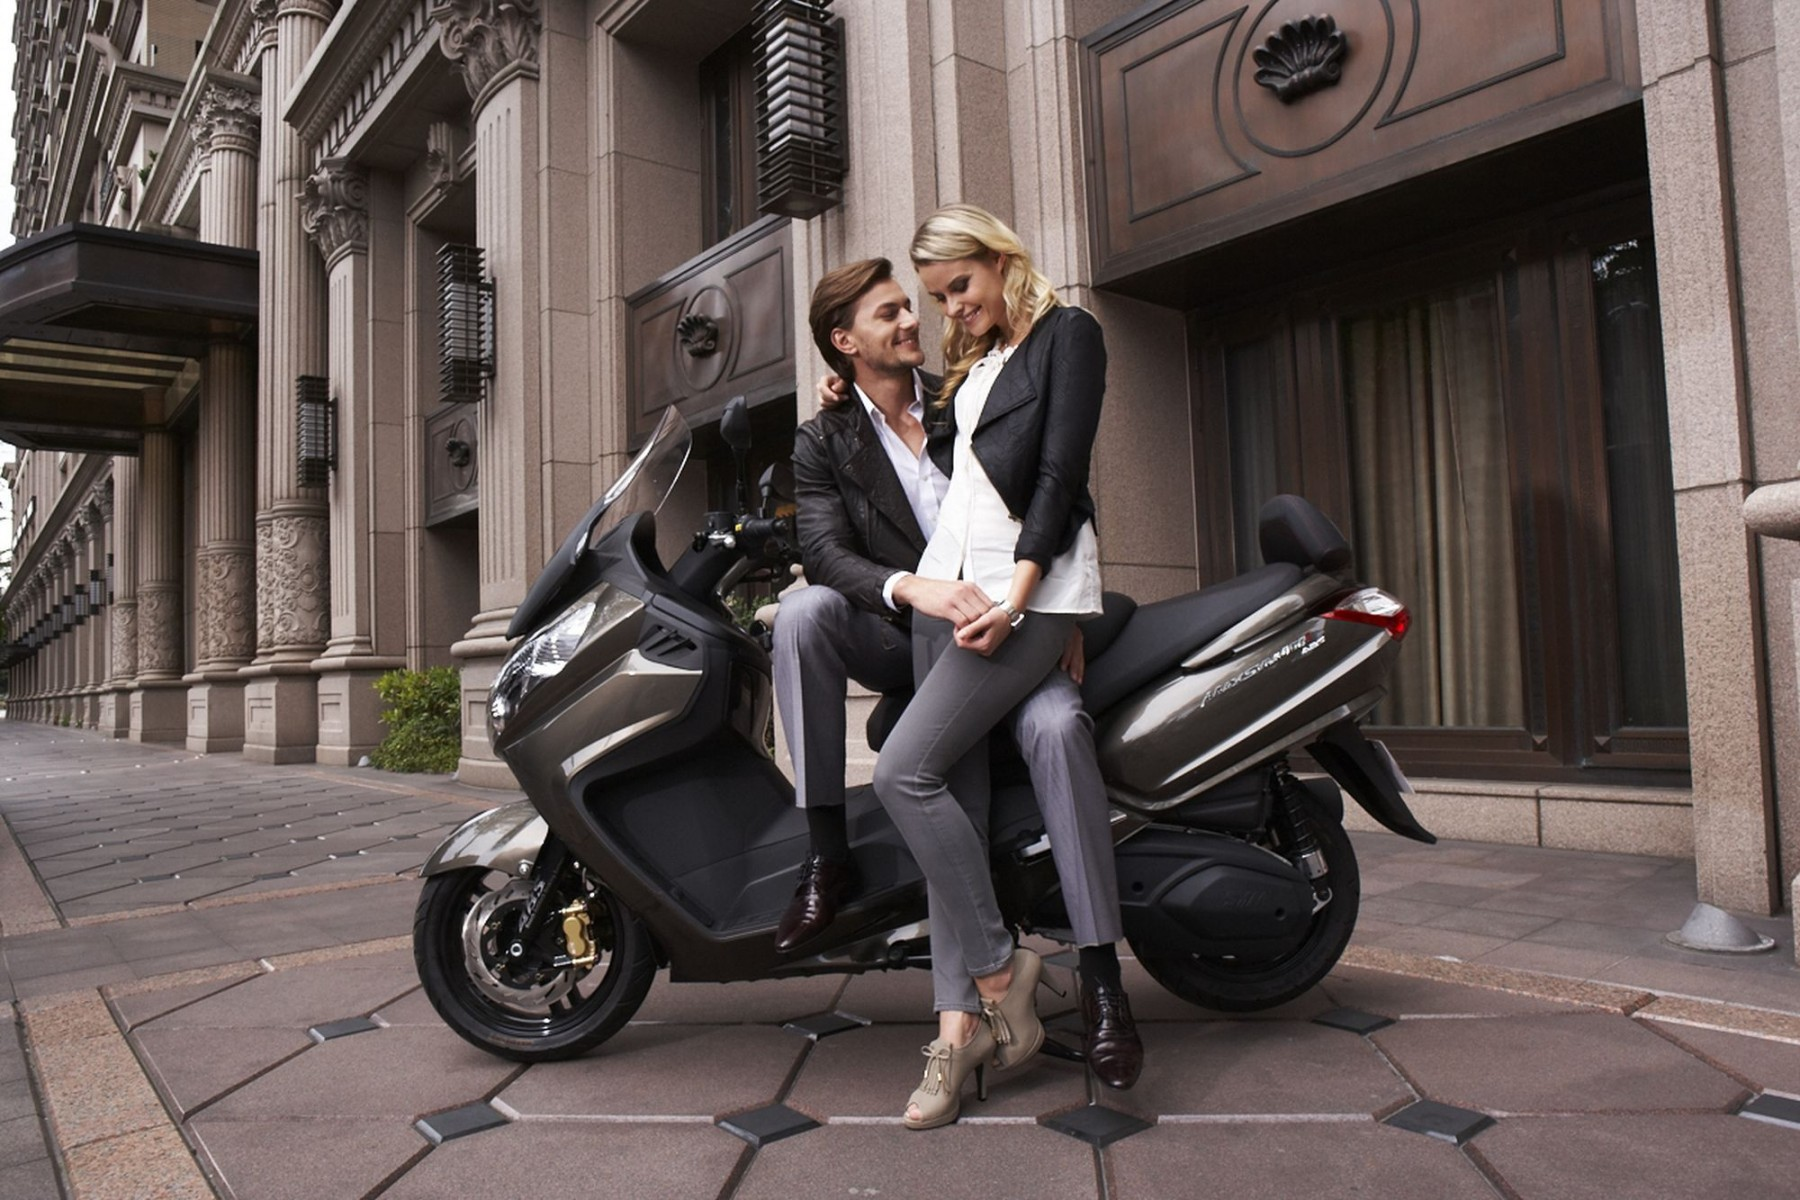 SYM Maxsym 400 - Scooter Central | Your One-Stop Scooter Shop!